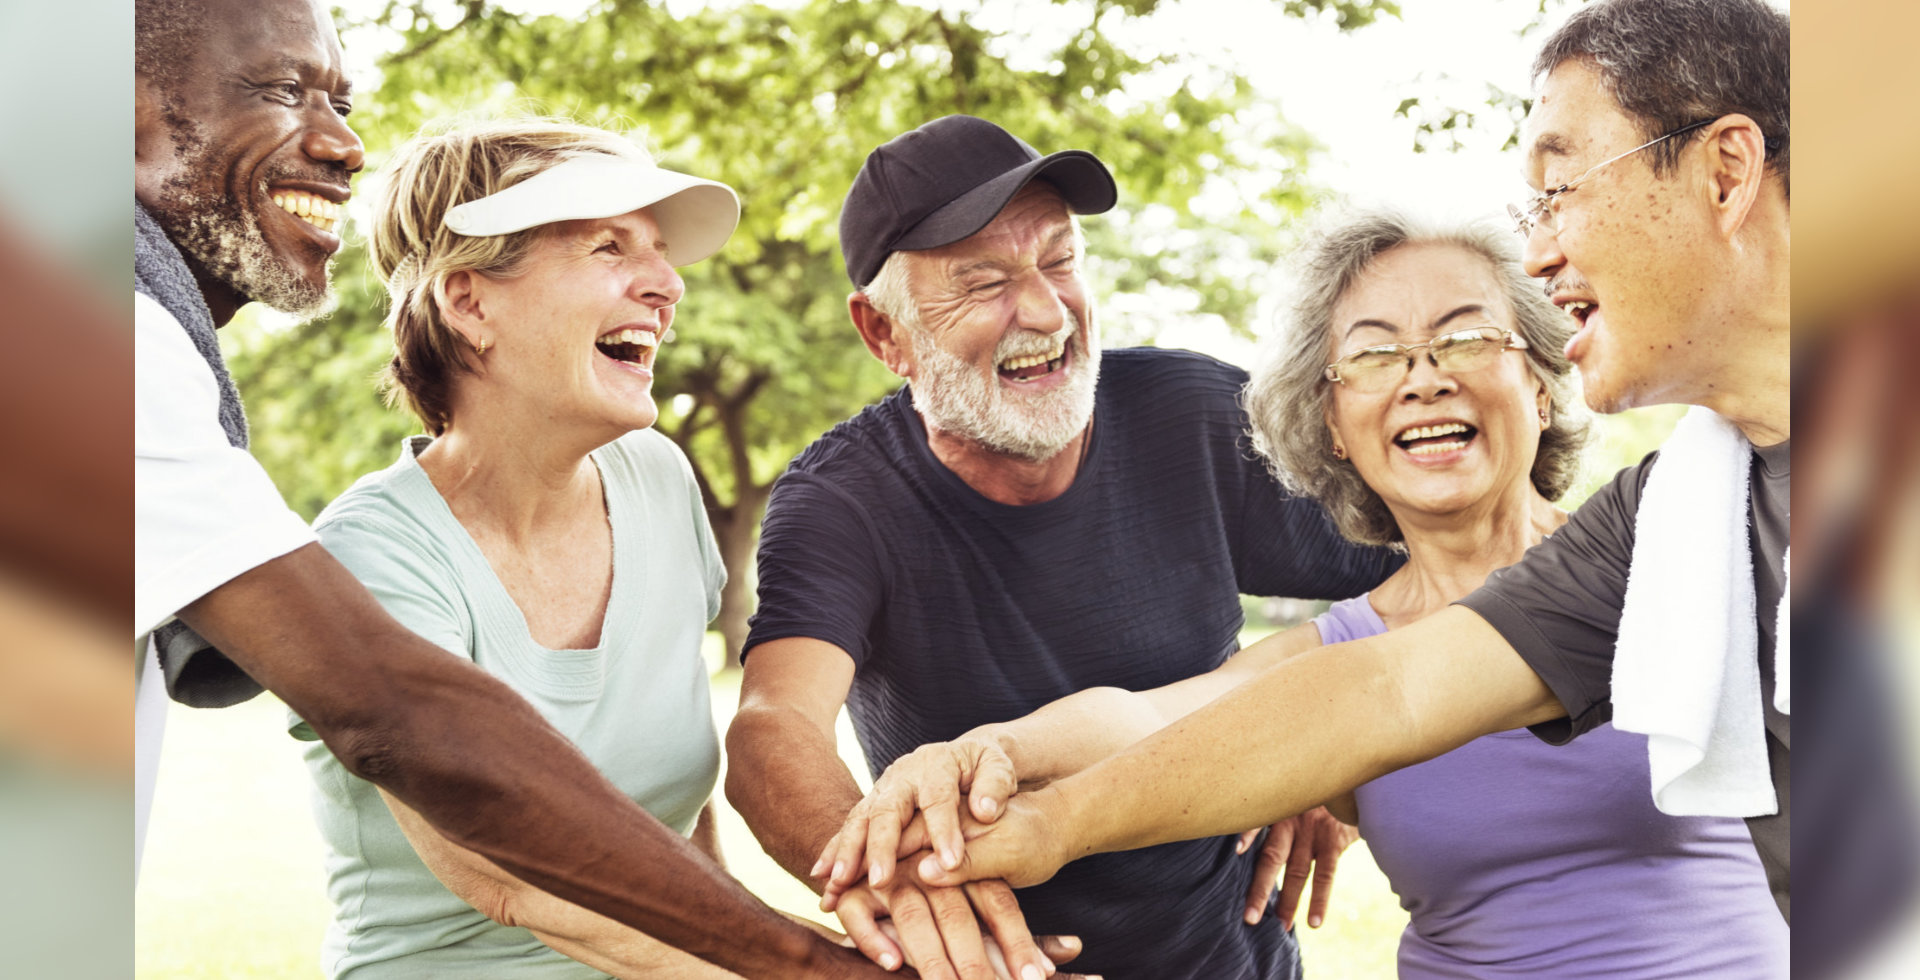 Group Of Senior Retirement Exercising Togetherness Concept.